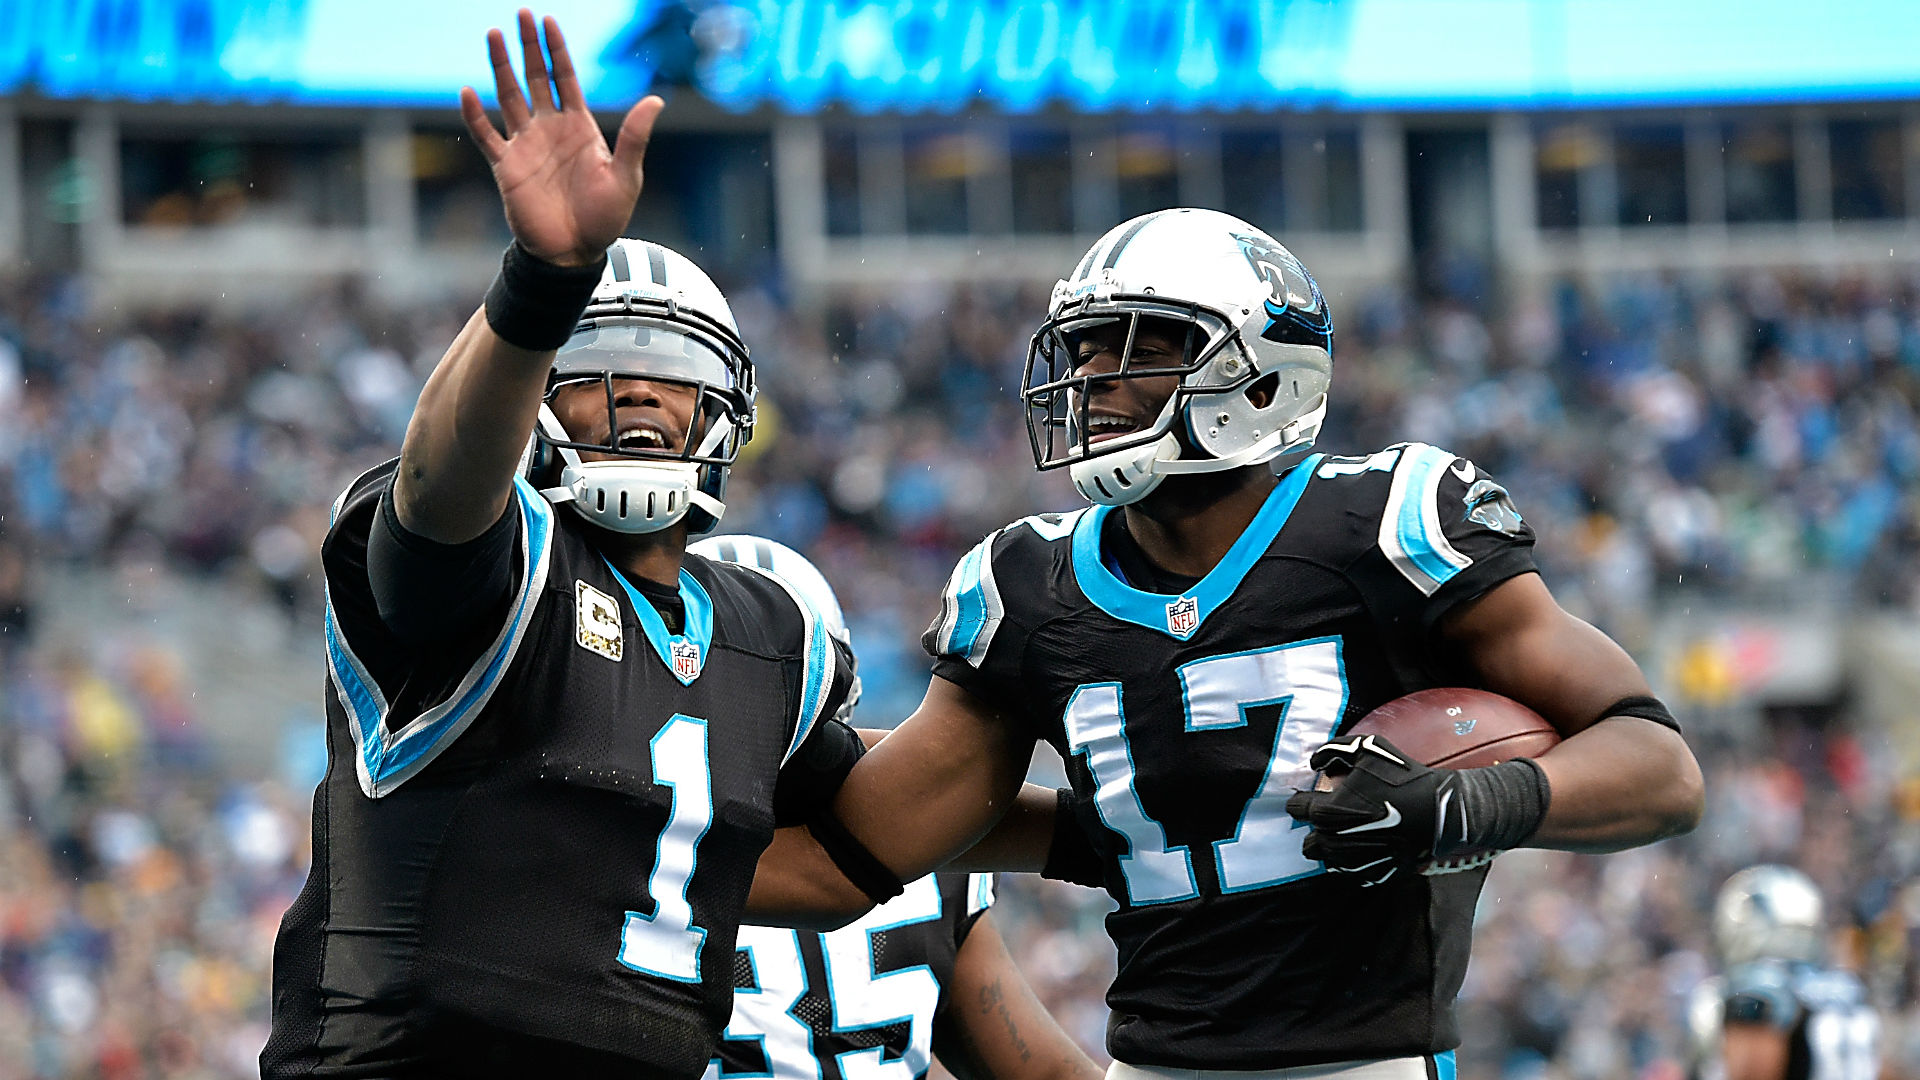 Panthers at Cowboys betting lines and pick - Carolina feeling disrespected by oddsmakers